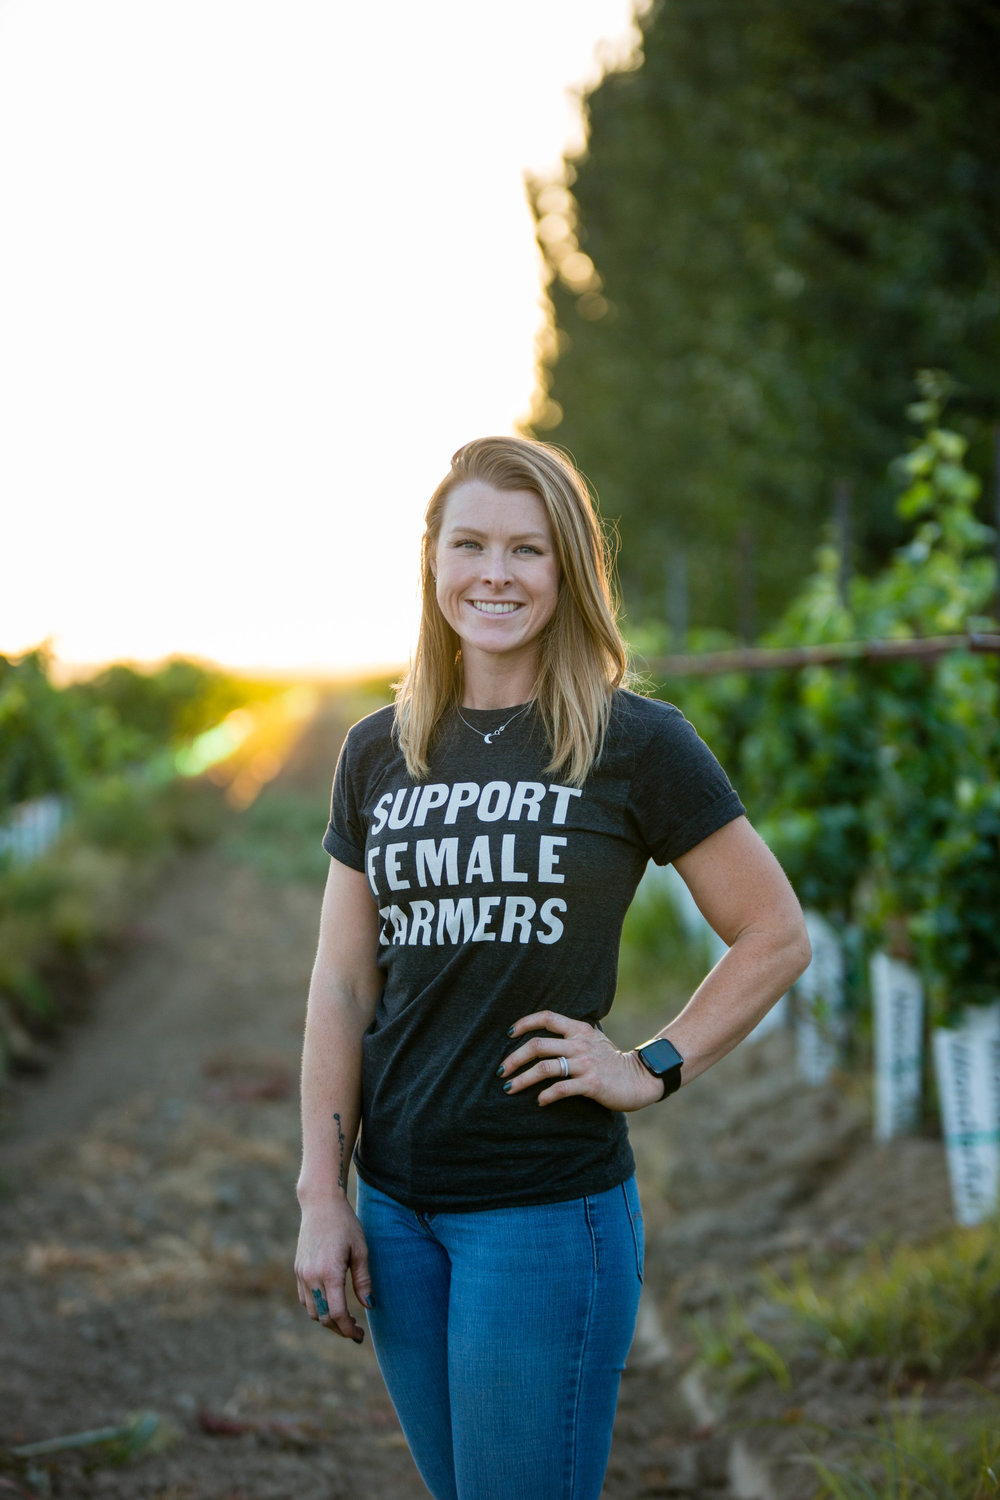 About Tara - - Hello! I'm Tara, a 27-year-old female farmer from Northern California. My family's background in farming is mainly grain crops, like corn and wheat, as well as running a land leveling business. I'm a 5th generation farmer. But I'm the first FarmHer, and I'm the first to have a vineyard.I moved home in 2015 to start working full time on the farm. I soon started working on developing my own operation. In 2017 I had solid plans to make my dream of Beaver Vineyards a reality. I planted 50 acres of Sauvignon Blanc in April of 2018 - 2 days after my wedding.I've learned that tomorrow isn't guaranteed, so live your life to the fullest today. I'm a Mental Health advocate just as much as I'm an AGvocate. I live in the middle of a pear orchard. I have 3 dogs, 3 cats, a few chickens, and an amazing husband that allows it.Thank you so much for checking out my blog and following my journey!-Tara